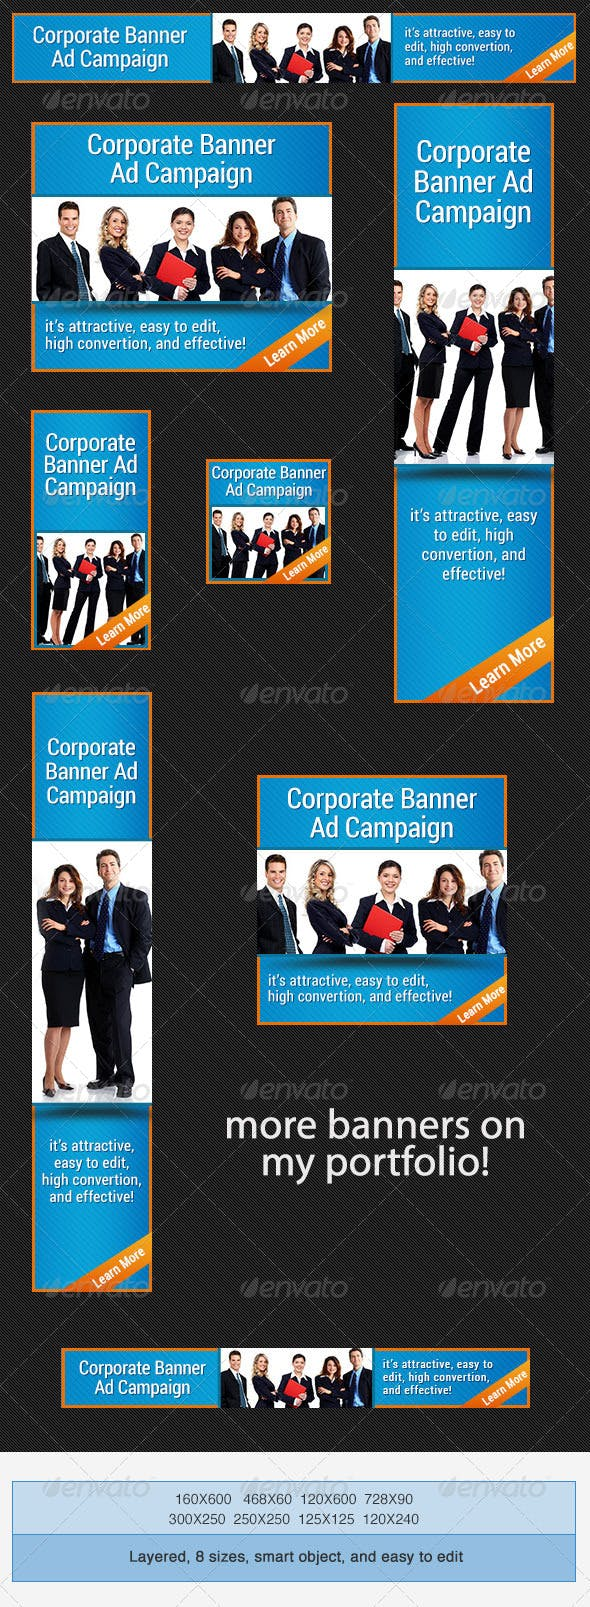 corporate psd banner ad template by admiral adictus graphicriver